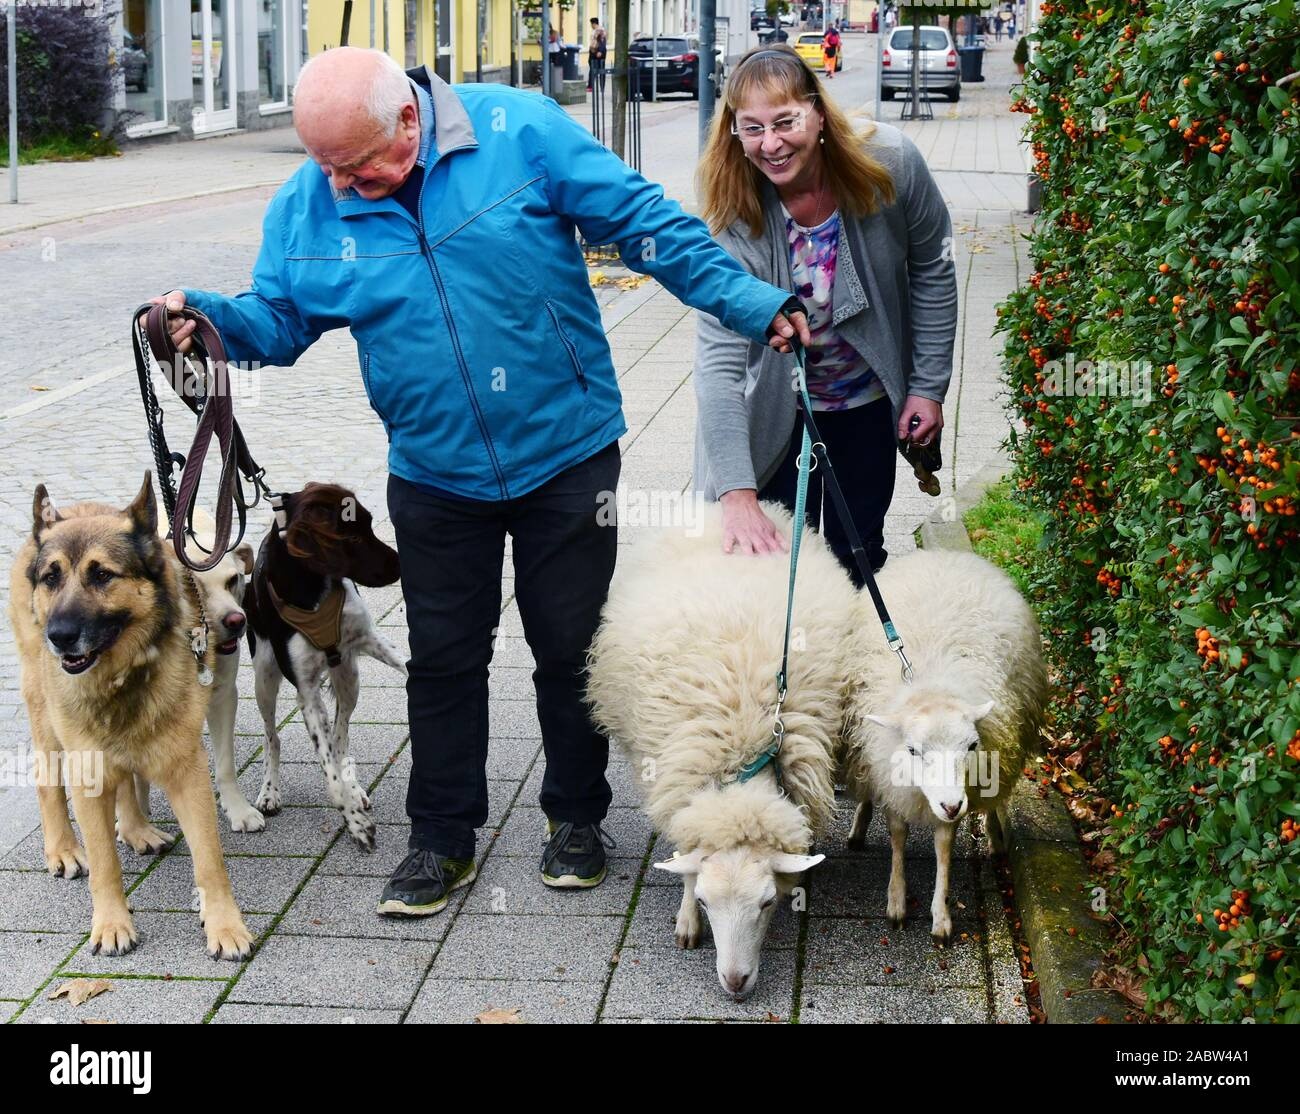 Schkeuditz, Germany. 21st Oct, 2019. Werner Dreßler walking with his animals, three dogs and two sheep in the city centre. A woman uses the opportunity to stroke a sheep briefly. The 79-year-old master toolmaker takes the animals for a walk in the city every day and is an eye-catcher for locals and visitors alike. Credit: Waltraud Grubitzsch/dpa-Zentralbild/ZB/dpa/Alamy Live News Stock Photo